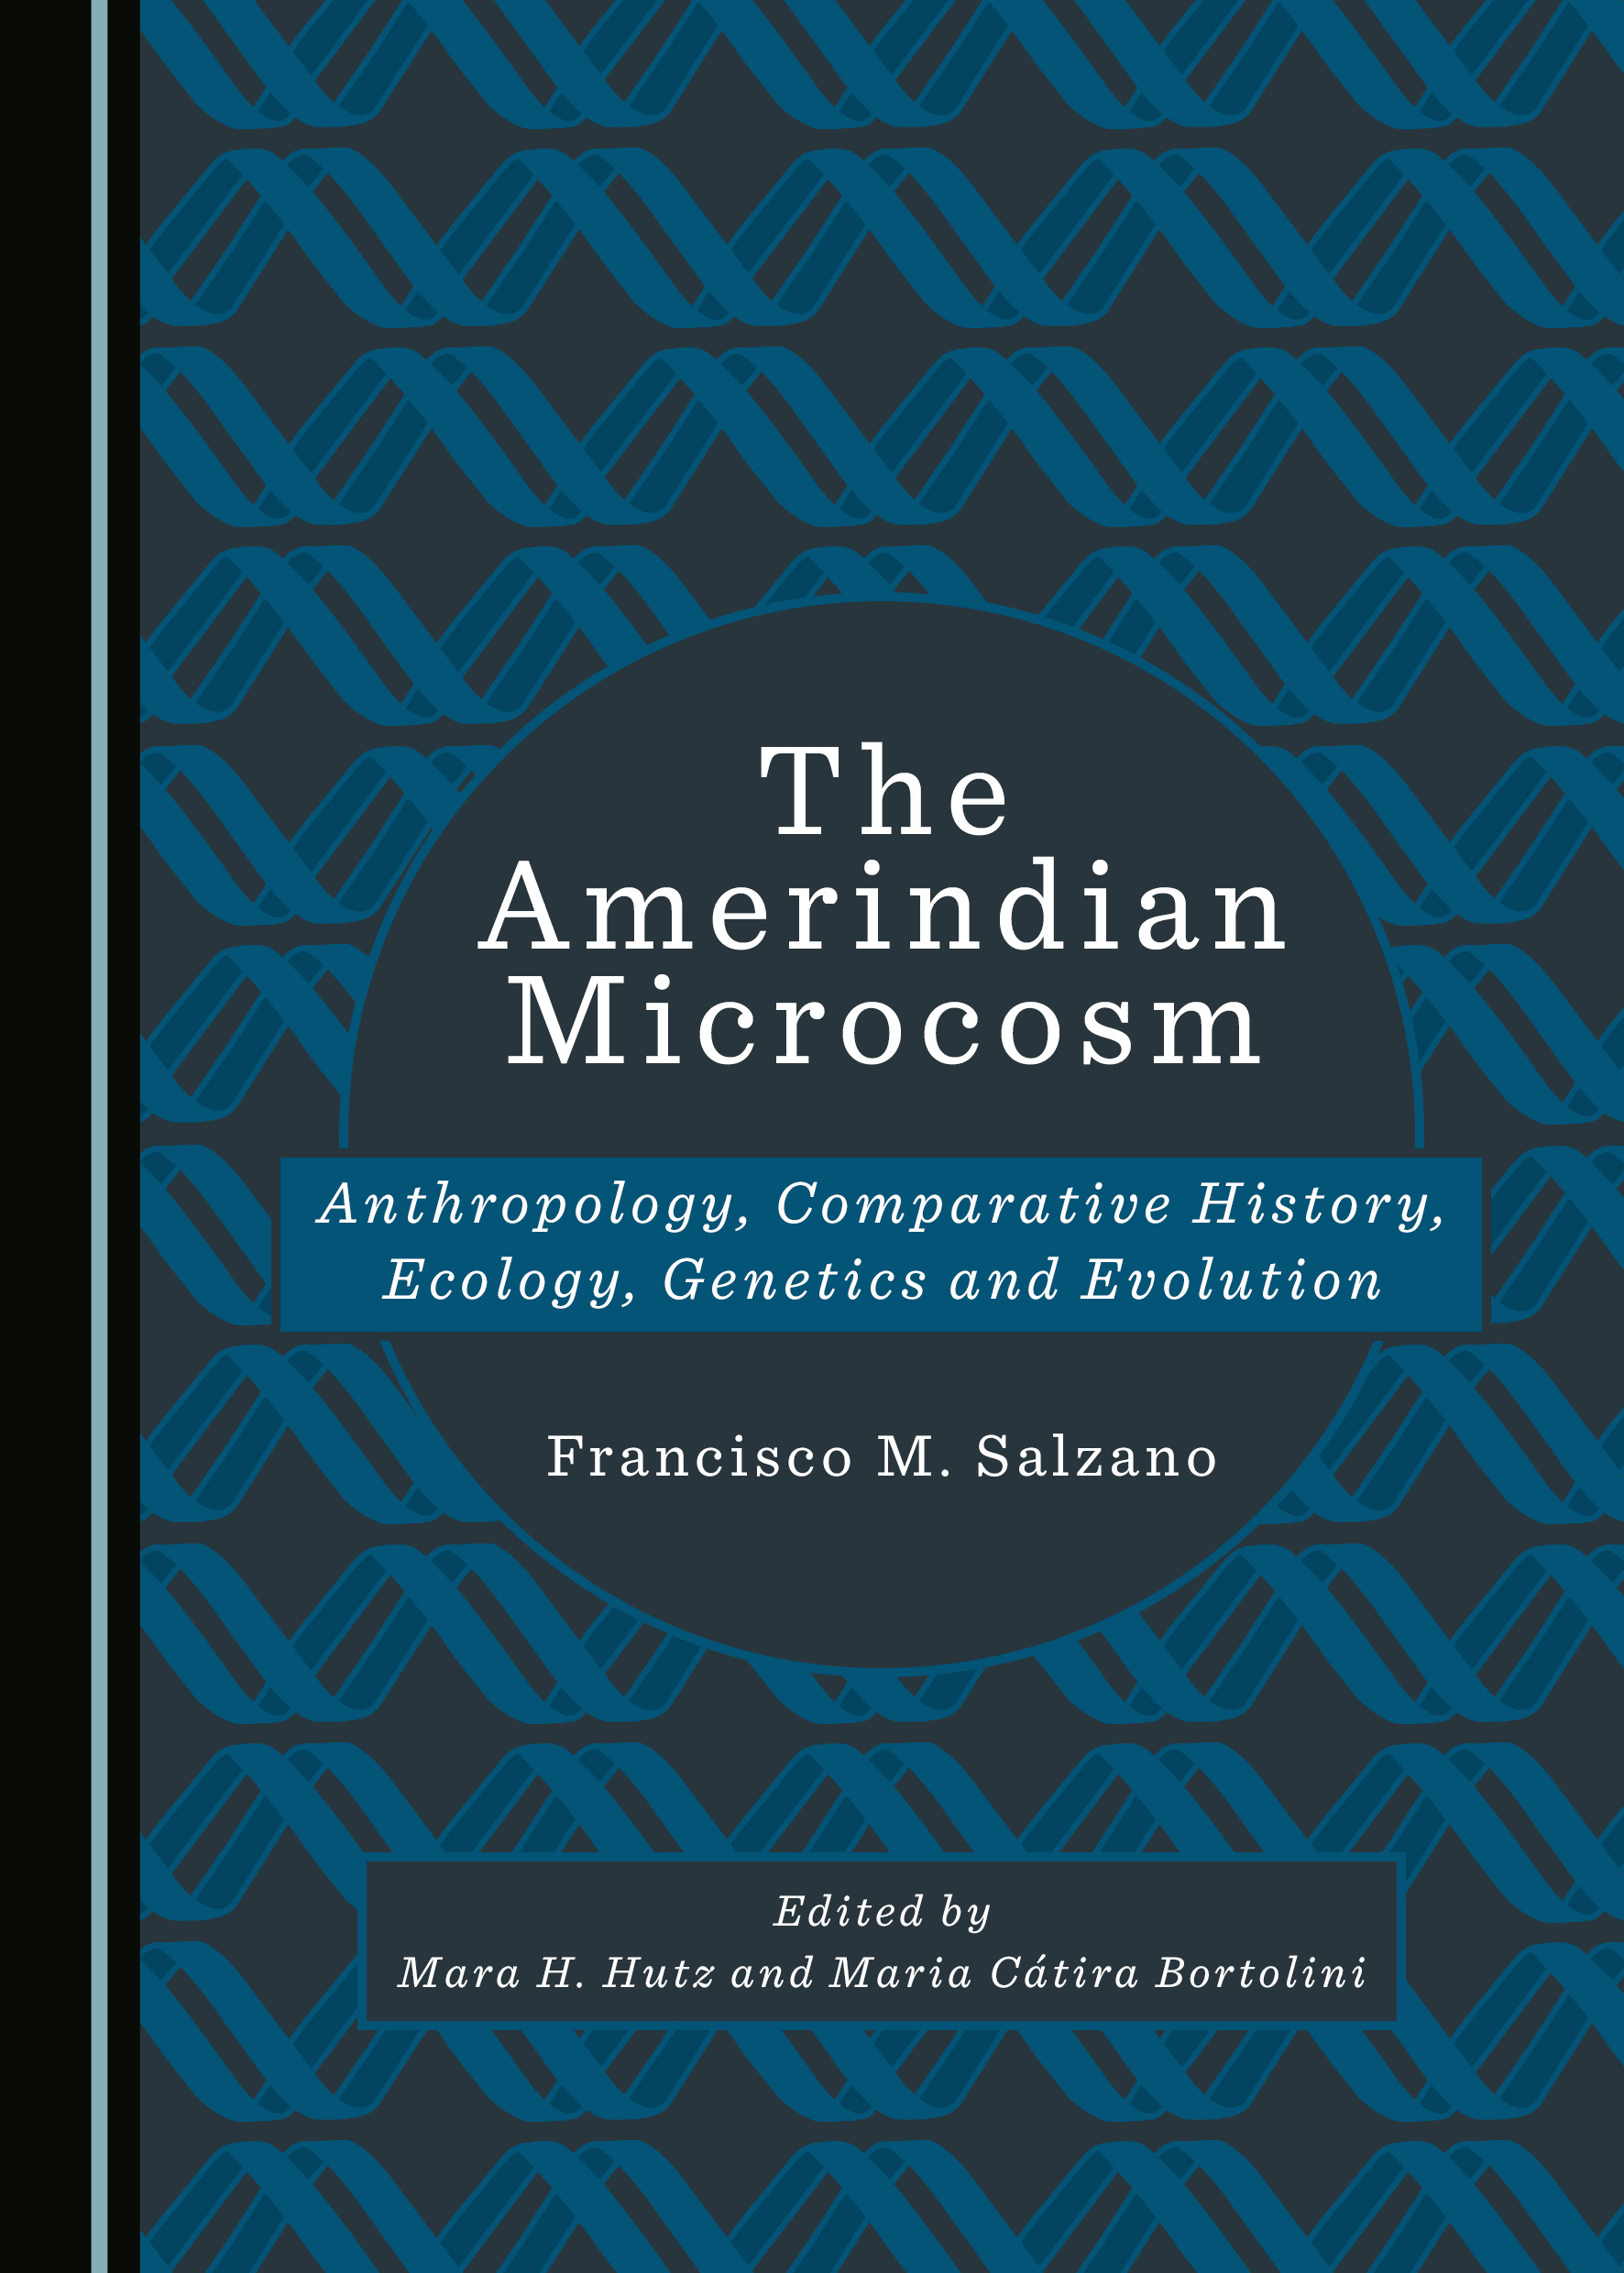 The Amerindian Microcosm: Anthropology, Comparative History, Ecology, Genetics and Evolution